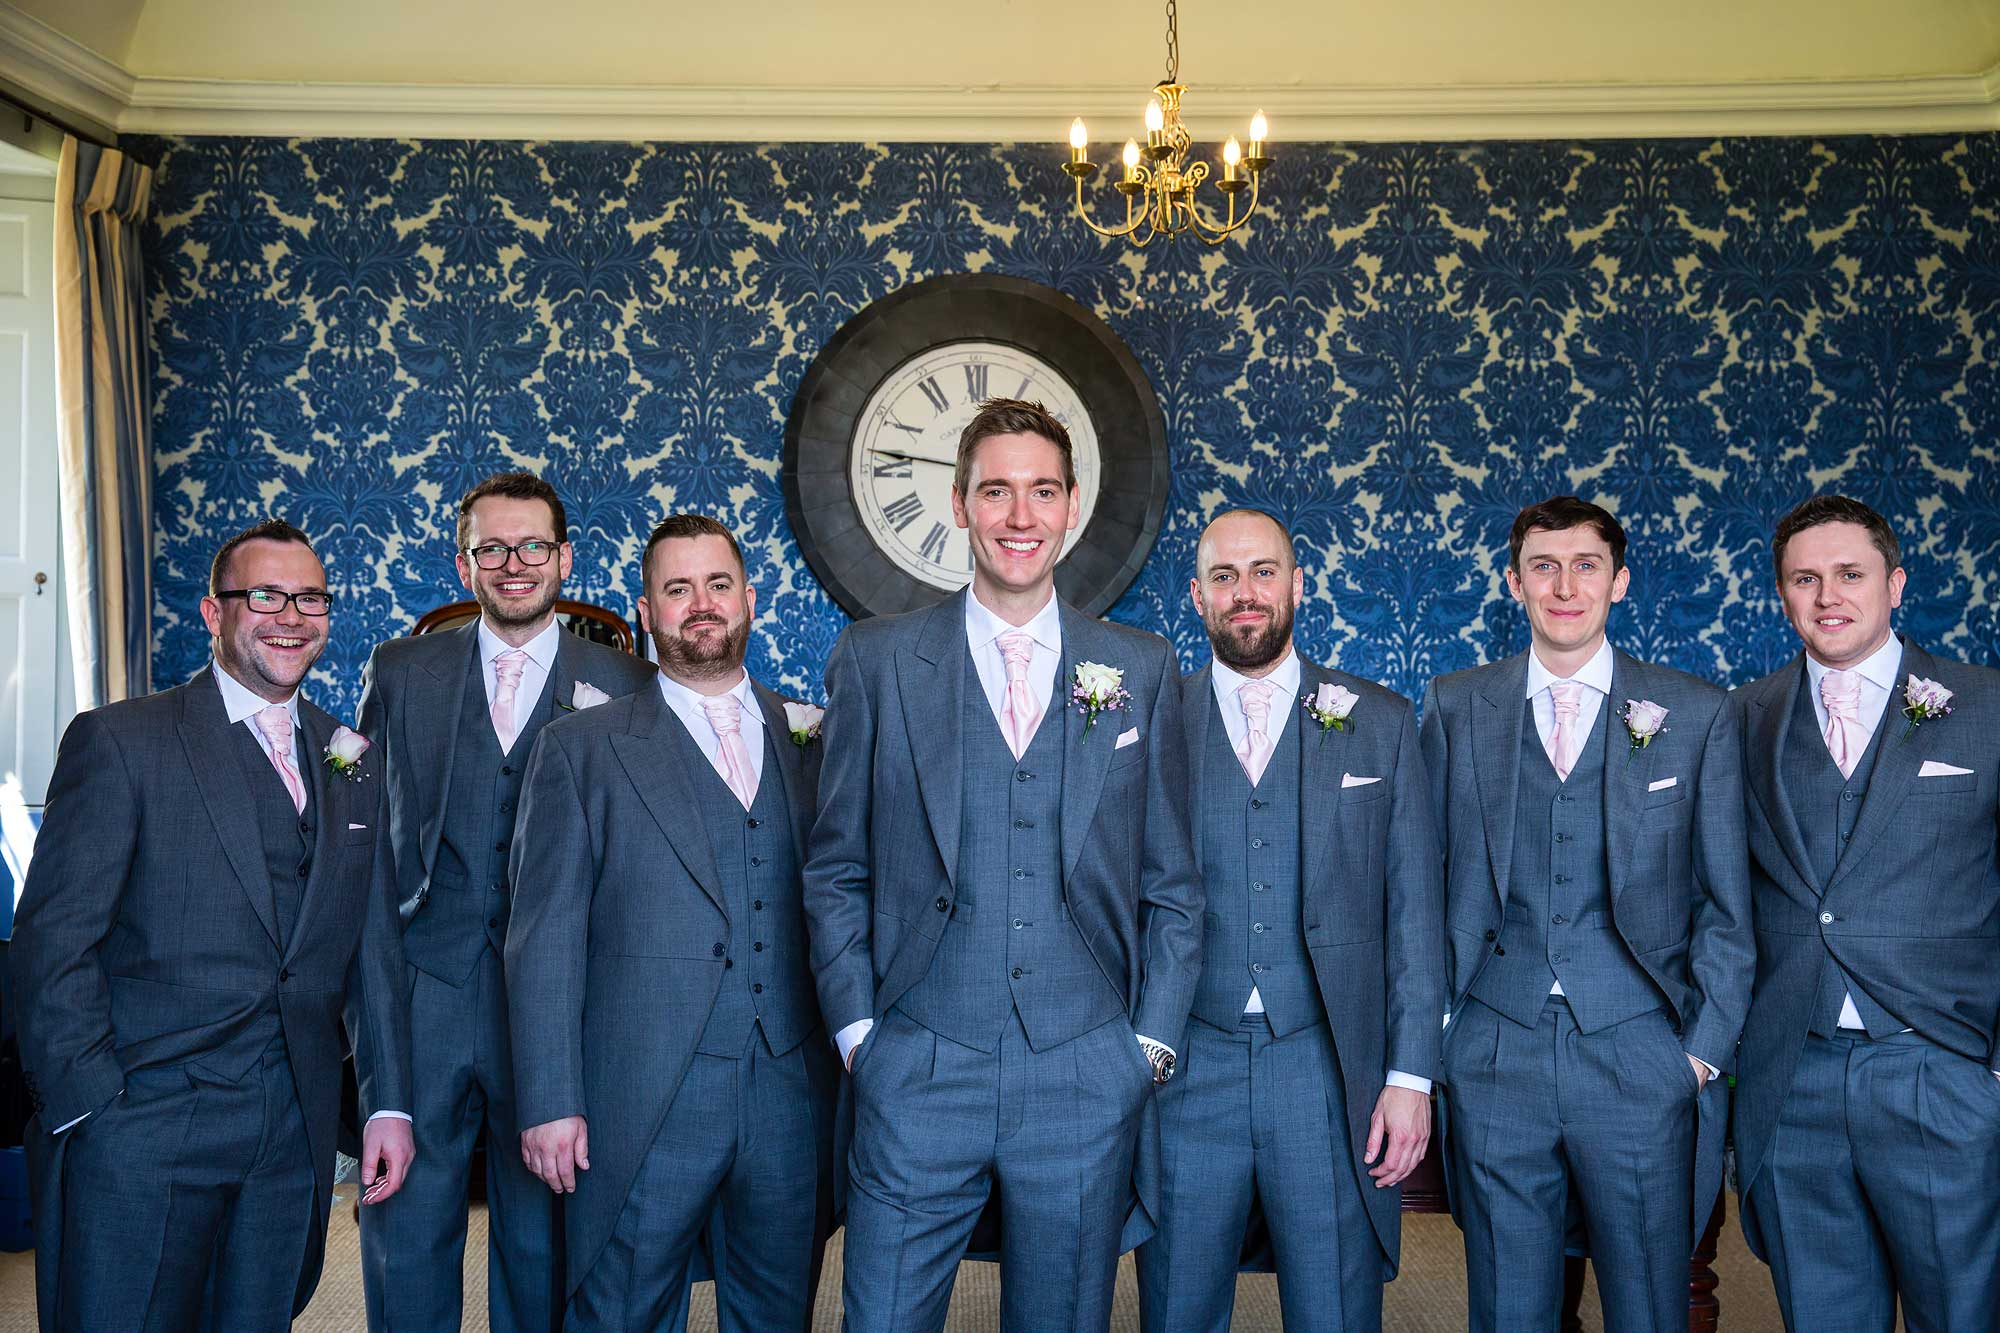 Group photo of the groom and his ushers